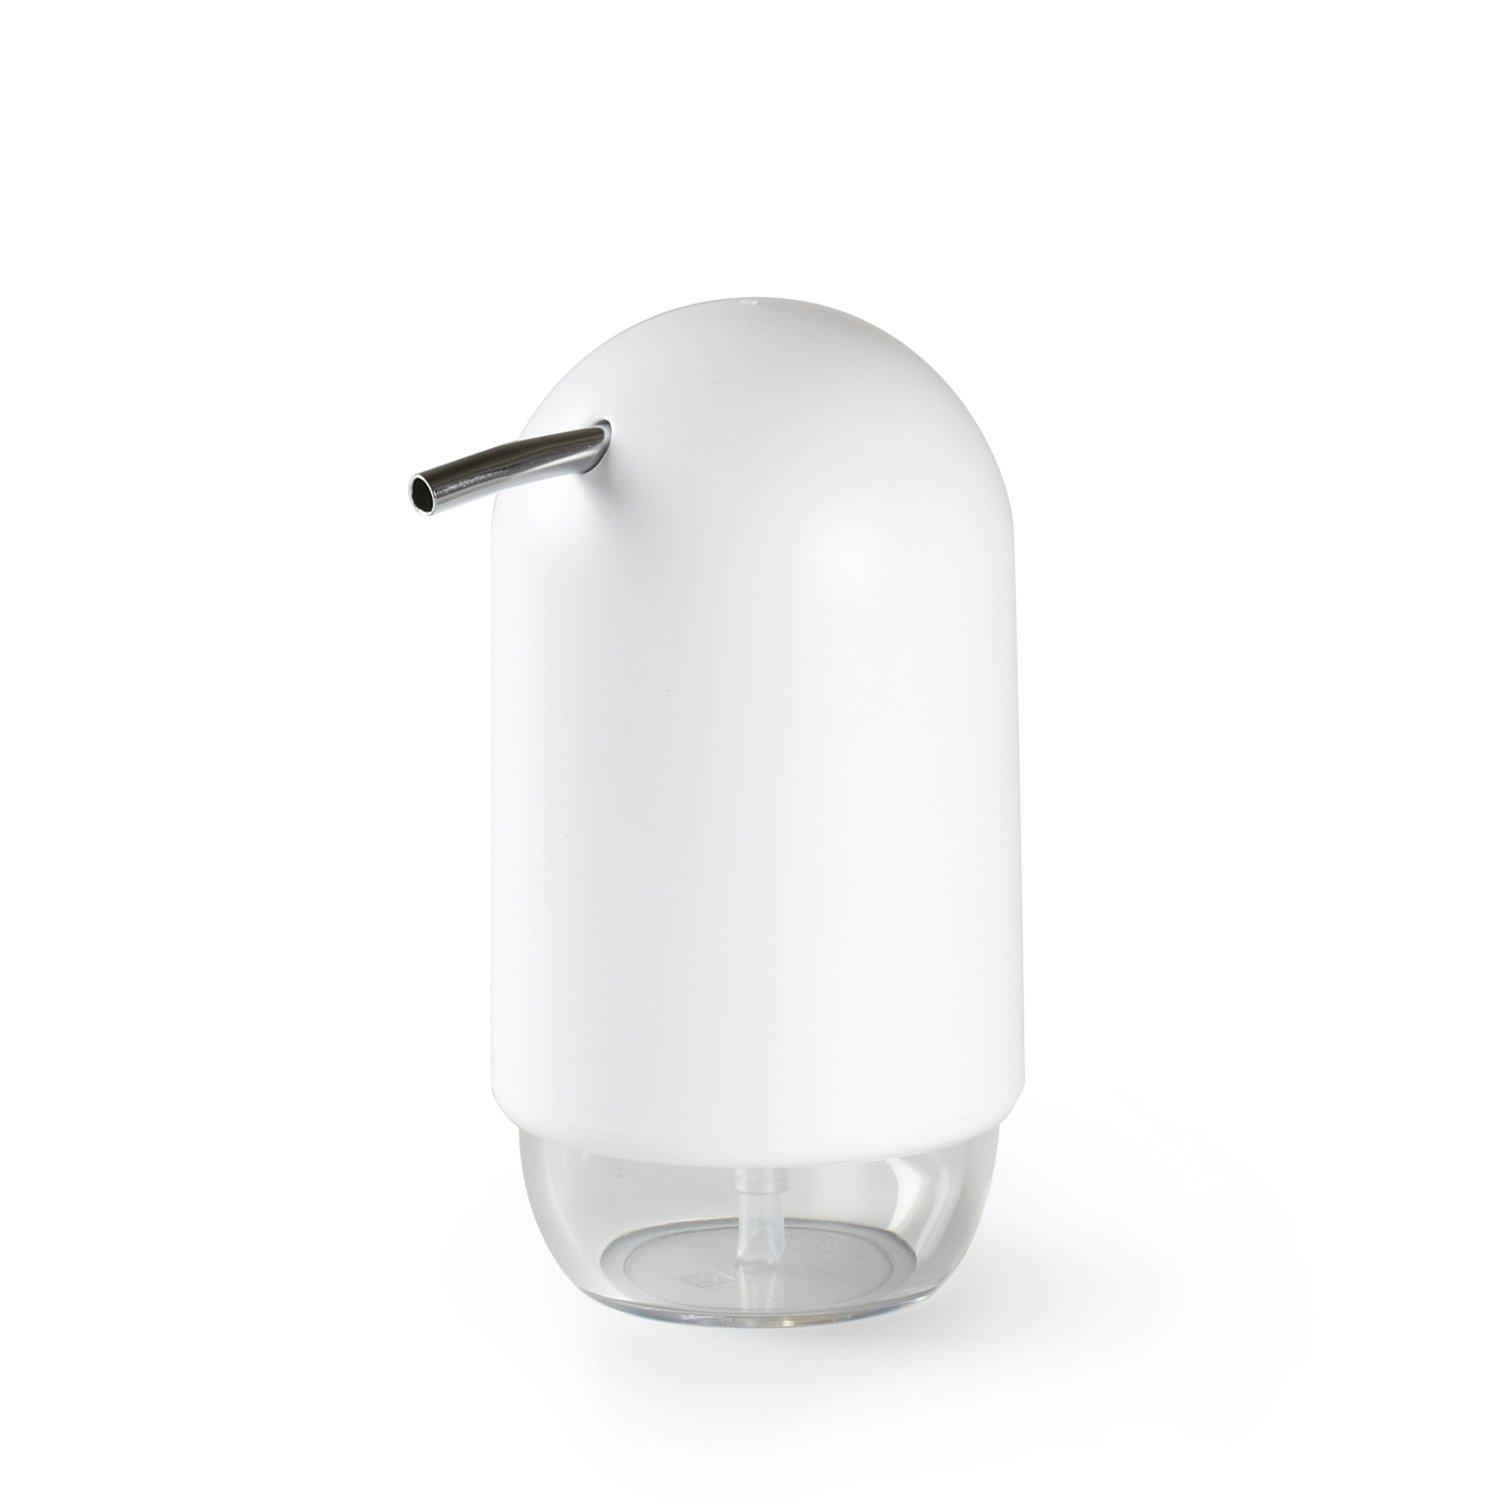 Amazon.com - Umbra Touch Soap Pump, White - Countertop Soap Dispensers